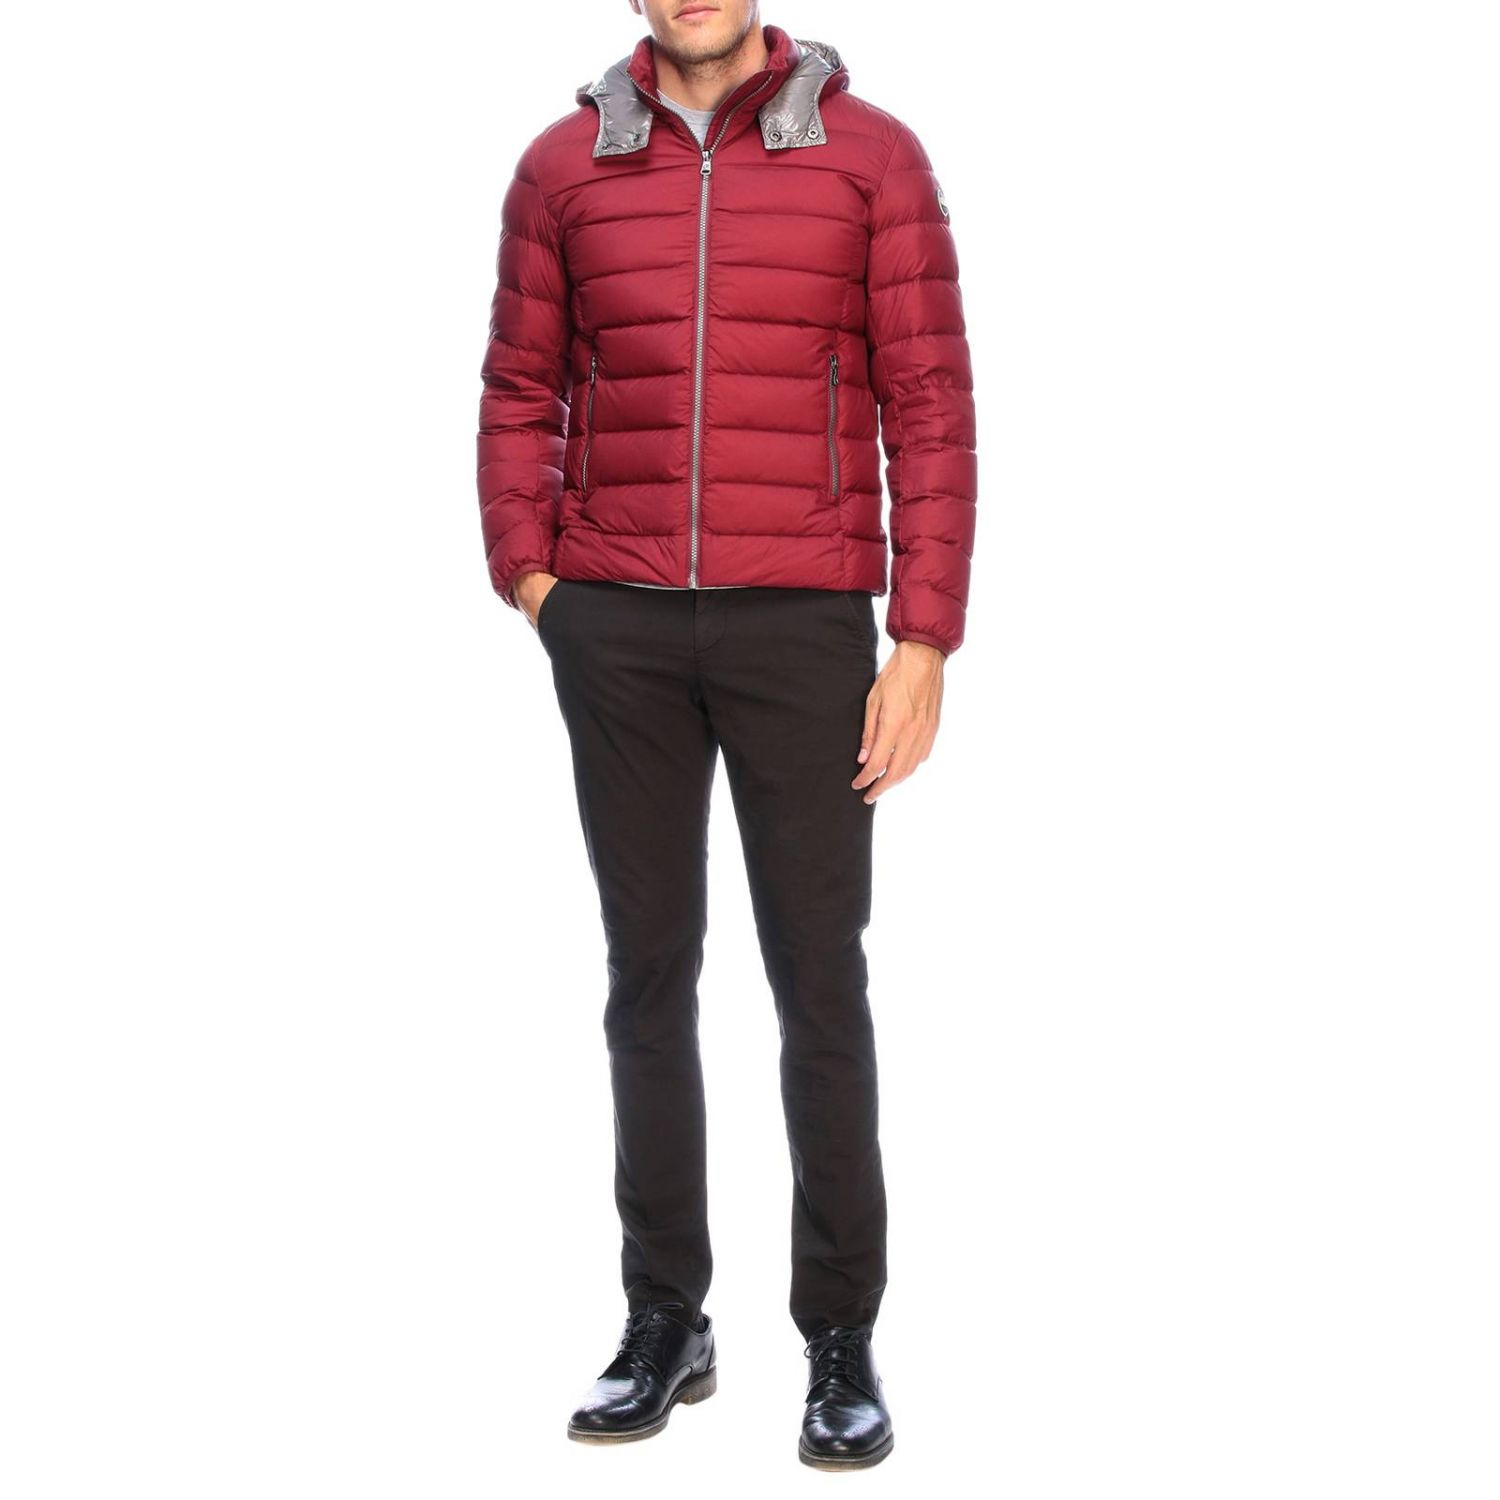 Jacket men Colmar burgundy 2